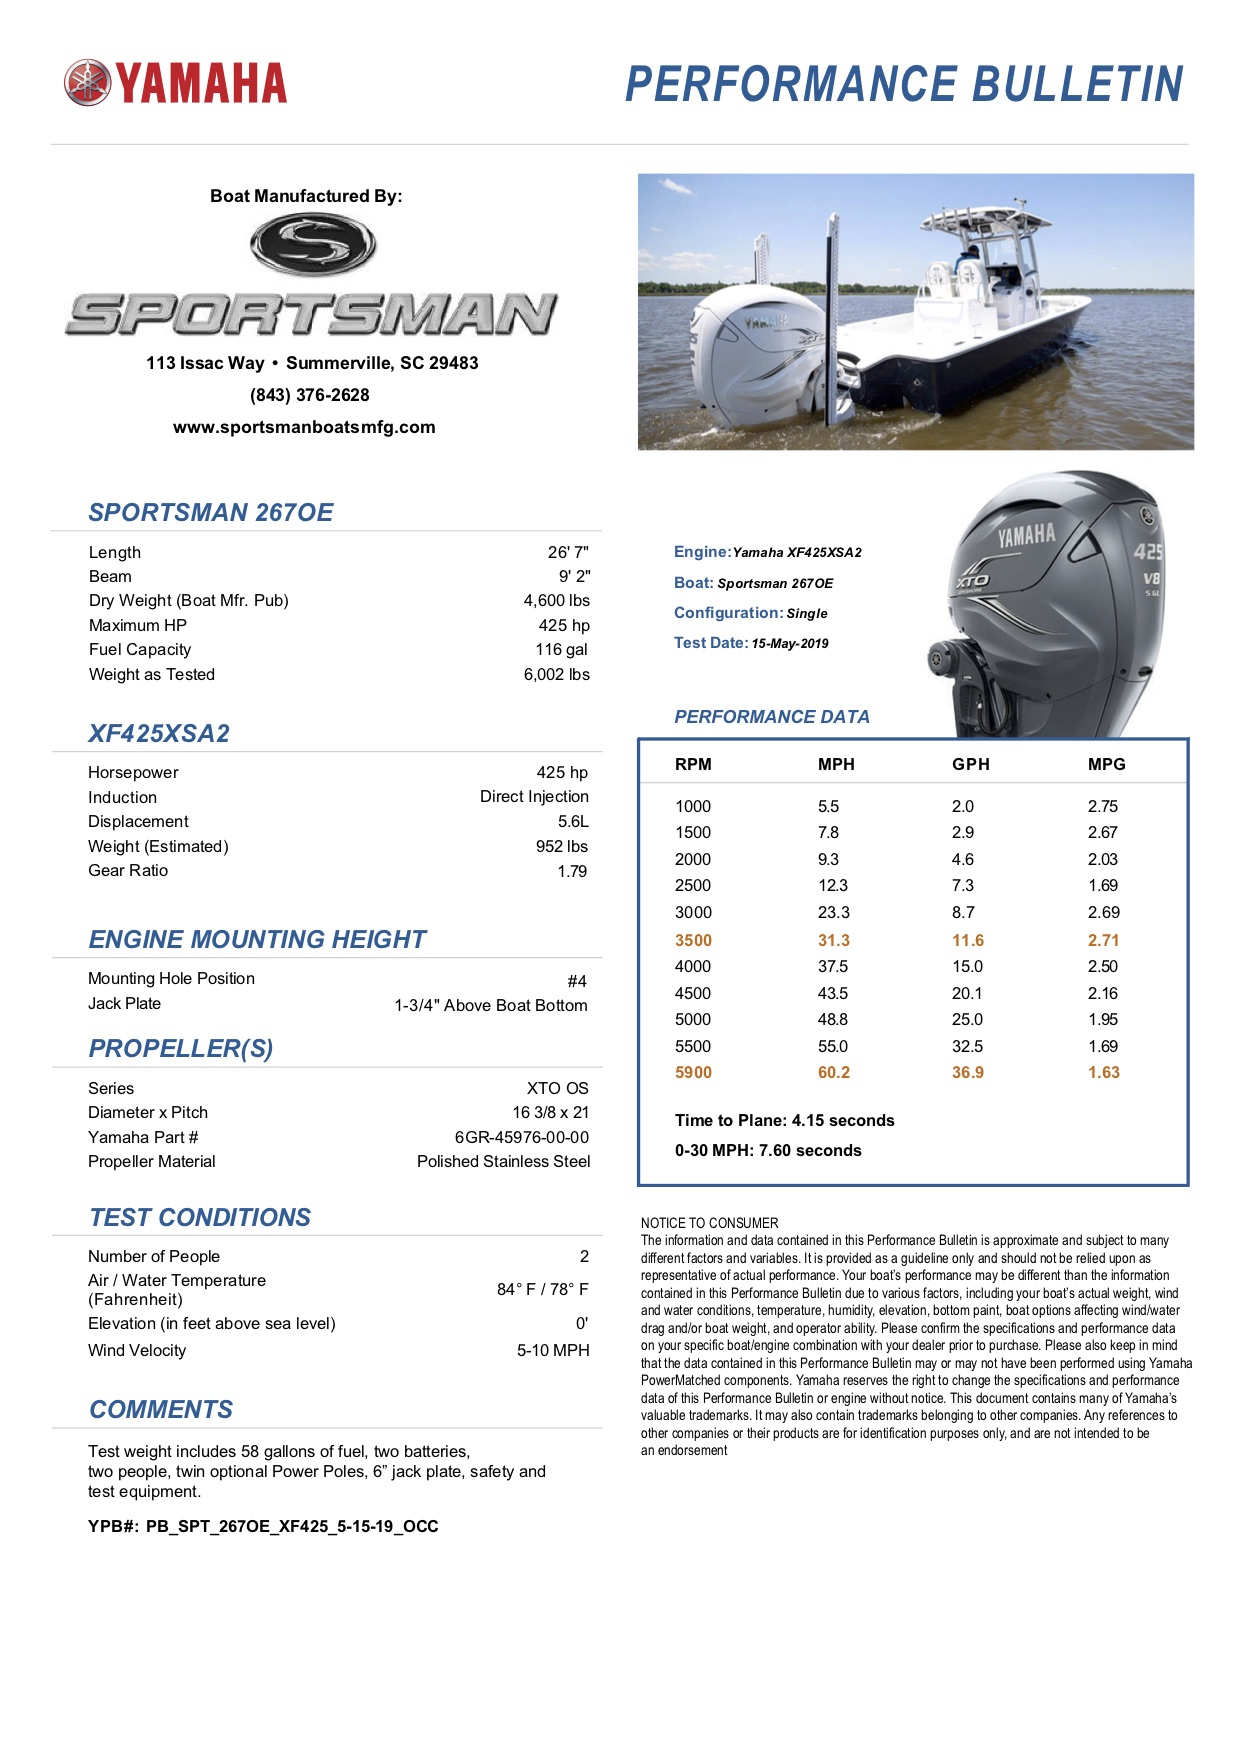 Performance bulletin for 267oe-bay-boat